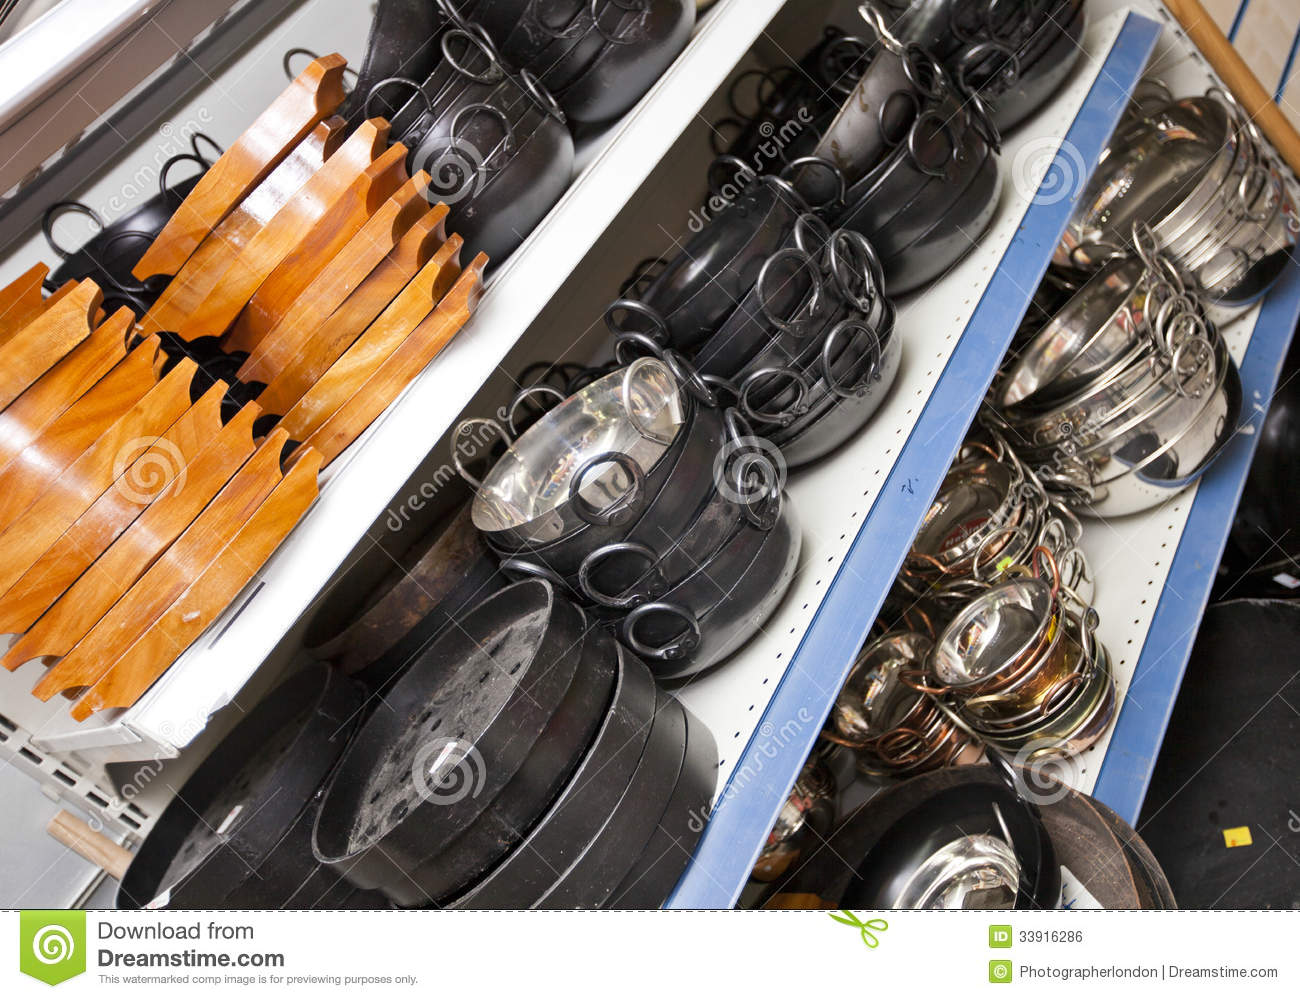 Charmant Kitchen Utensils On Display In Store Royalty Free Stock Image